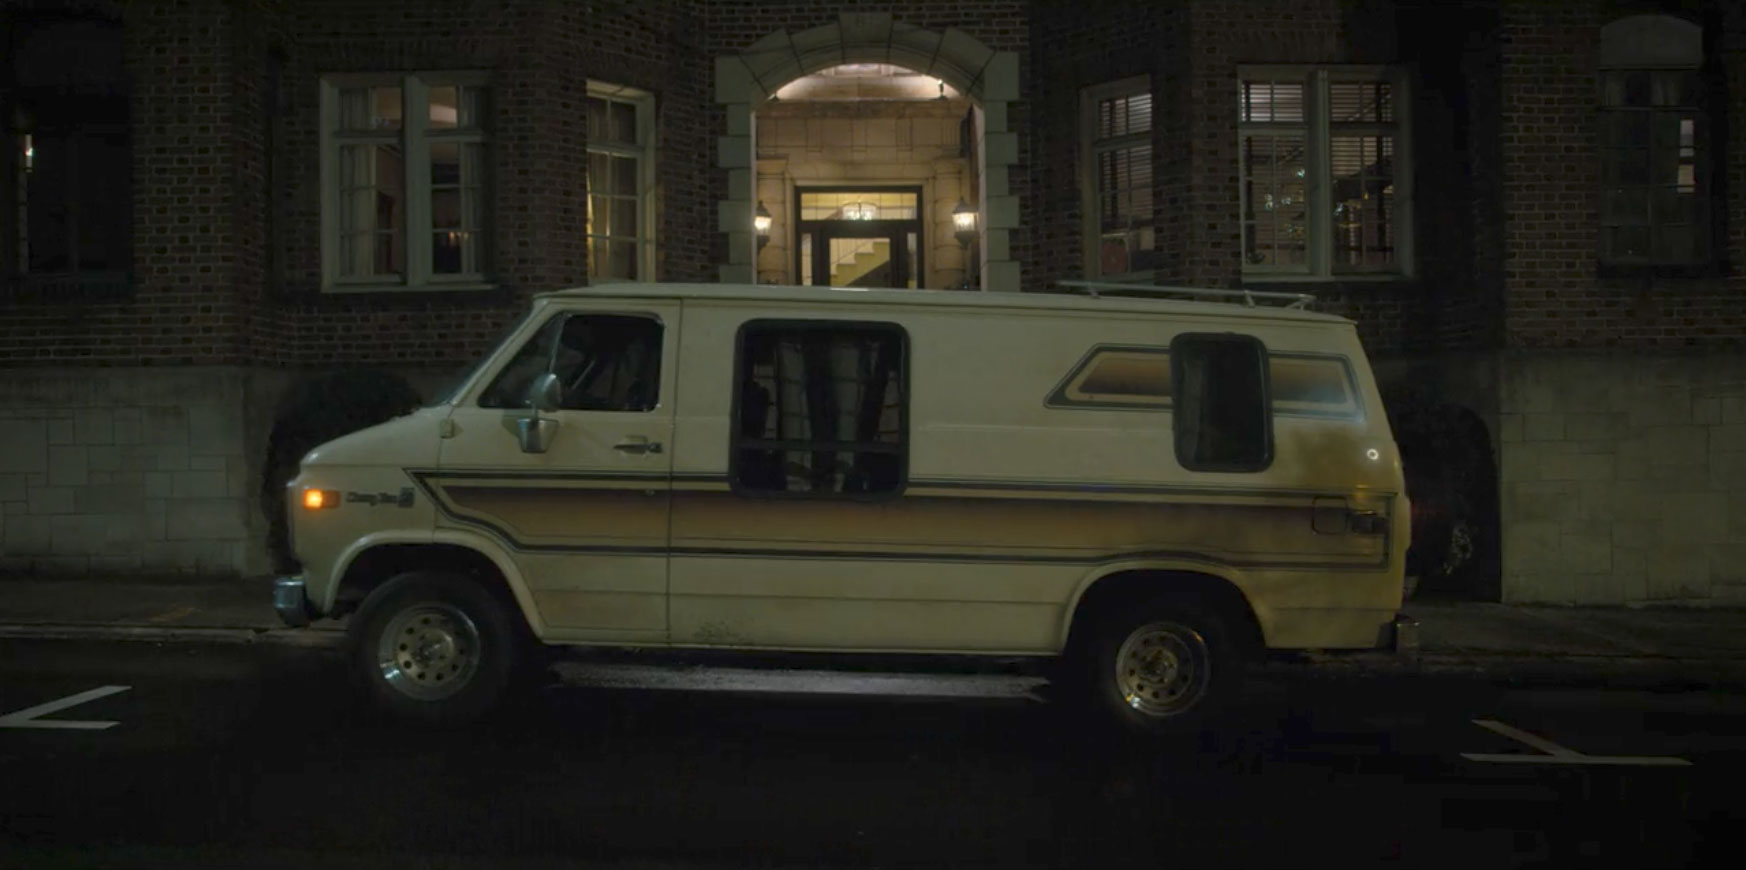 1981-82 Chevrolet Van in Stranger Things